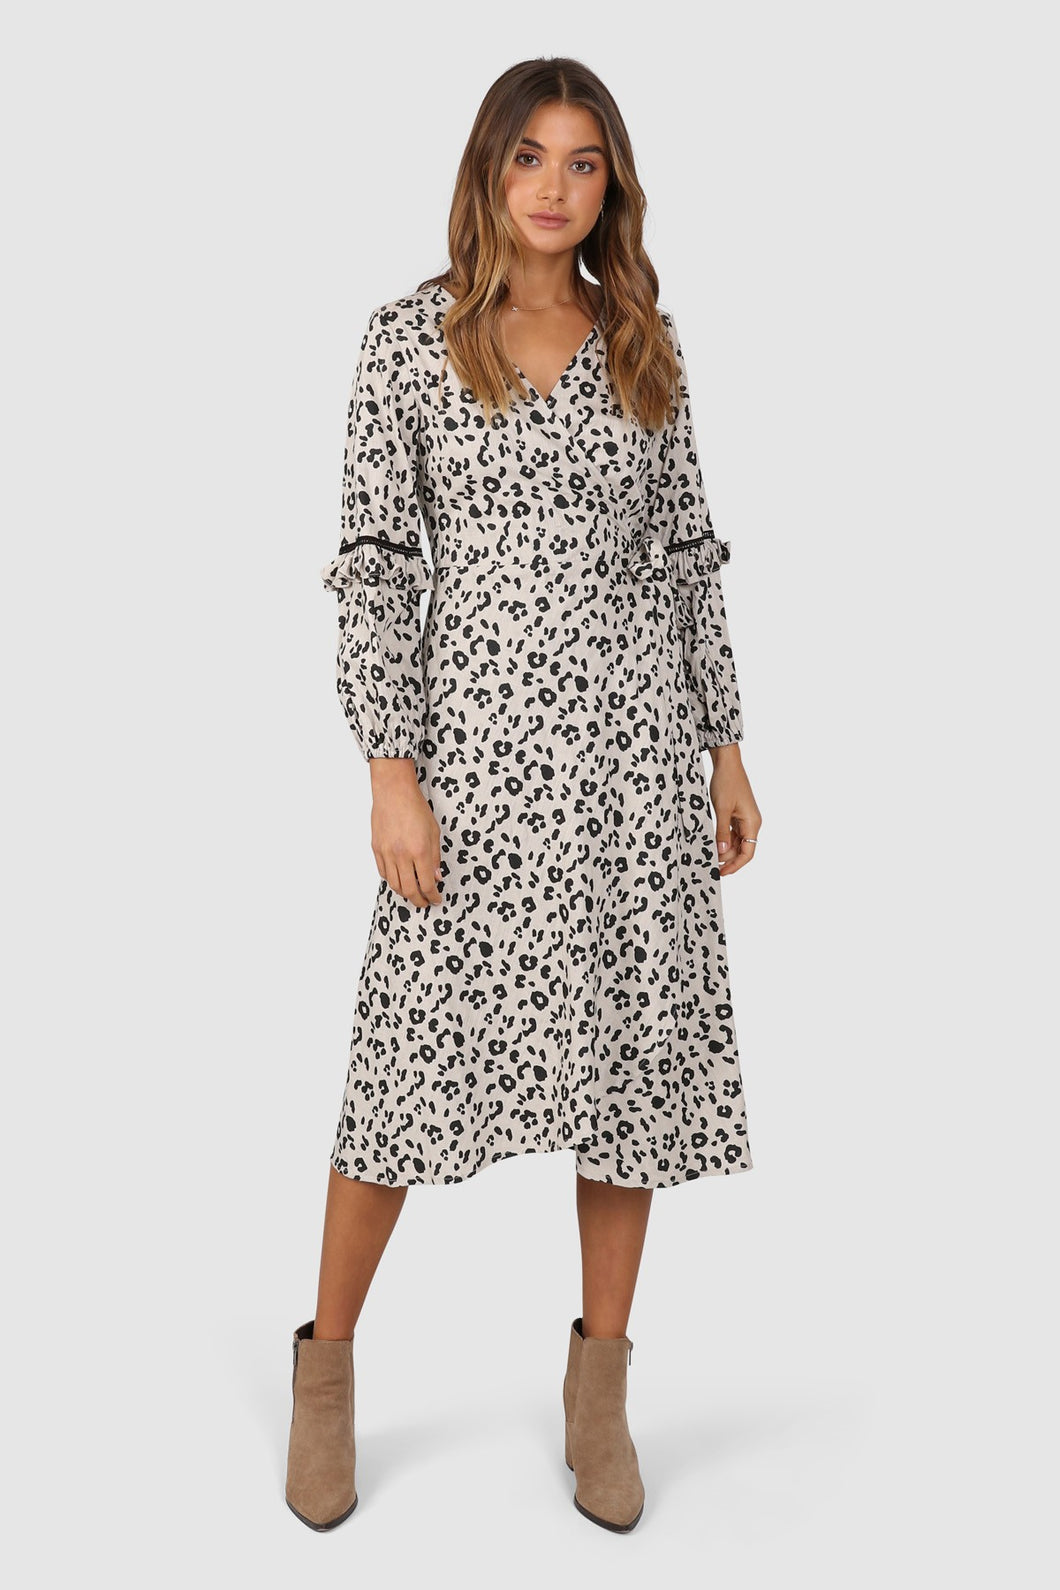 LARRSON WRAP DRESS - LEOPARD